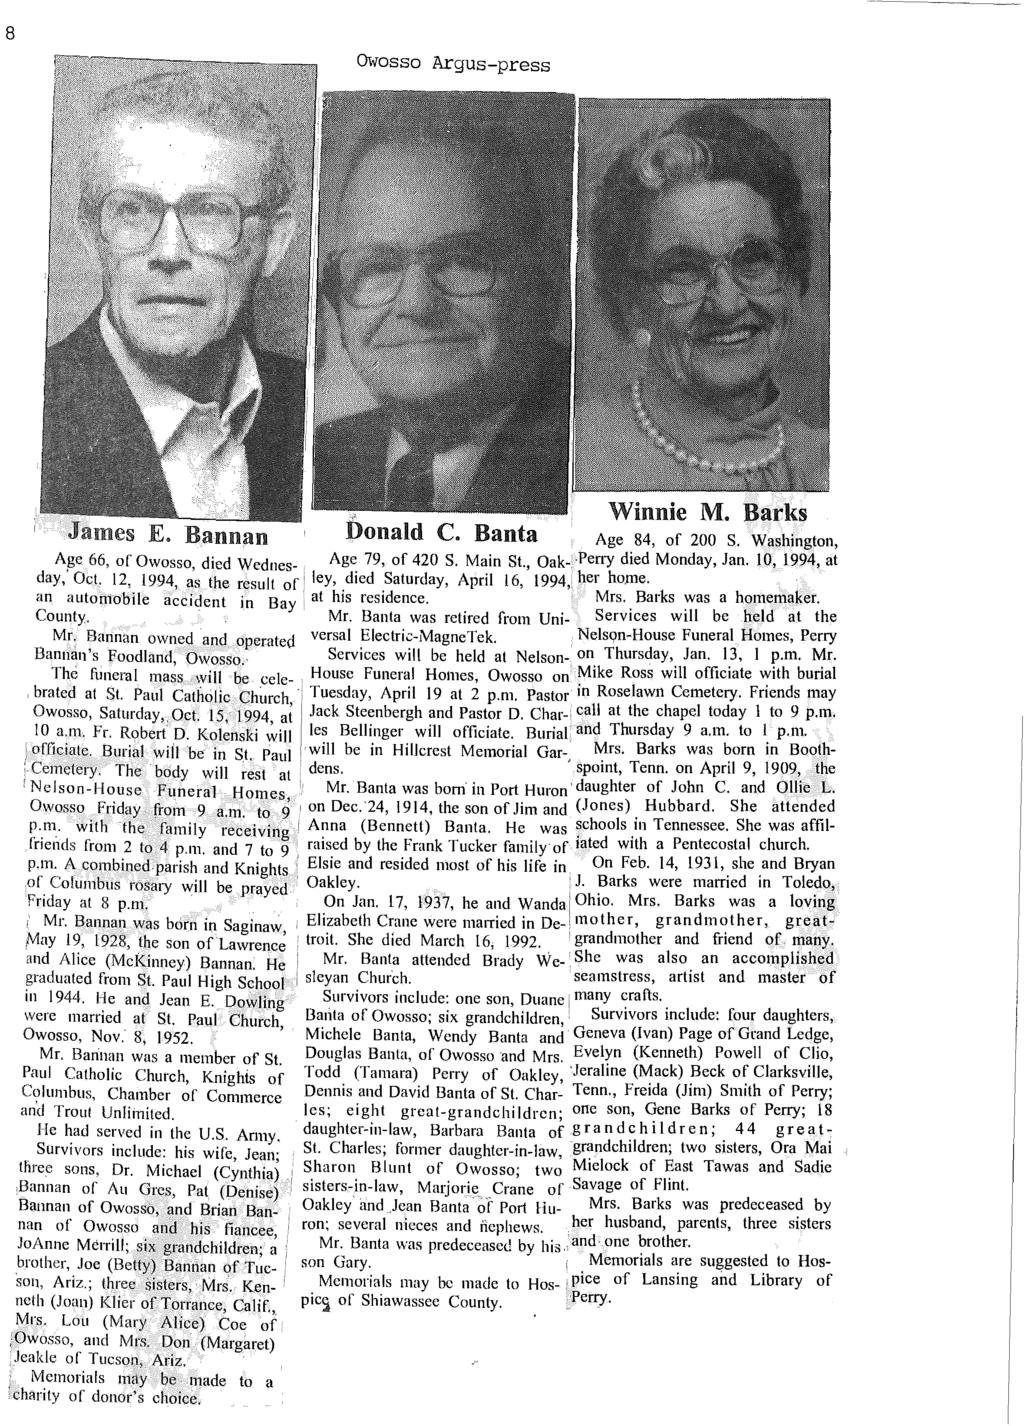 8 Owosso Argus-press James E. Bannan Donald C. Banta Age 84, of 200 S. Washington, AJ:Se 66, of Owosso, died Wednes- Age 79,. of 420 S. Main St., Oak- Perry died Monday, Jan. 10, 1994, at day, Oct.